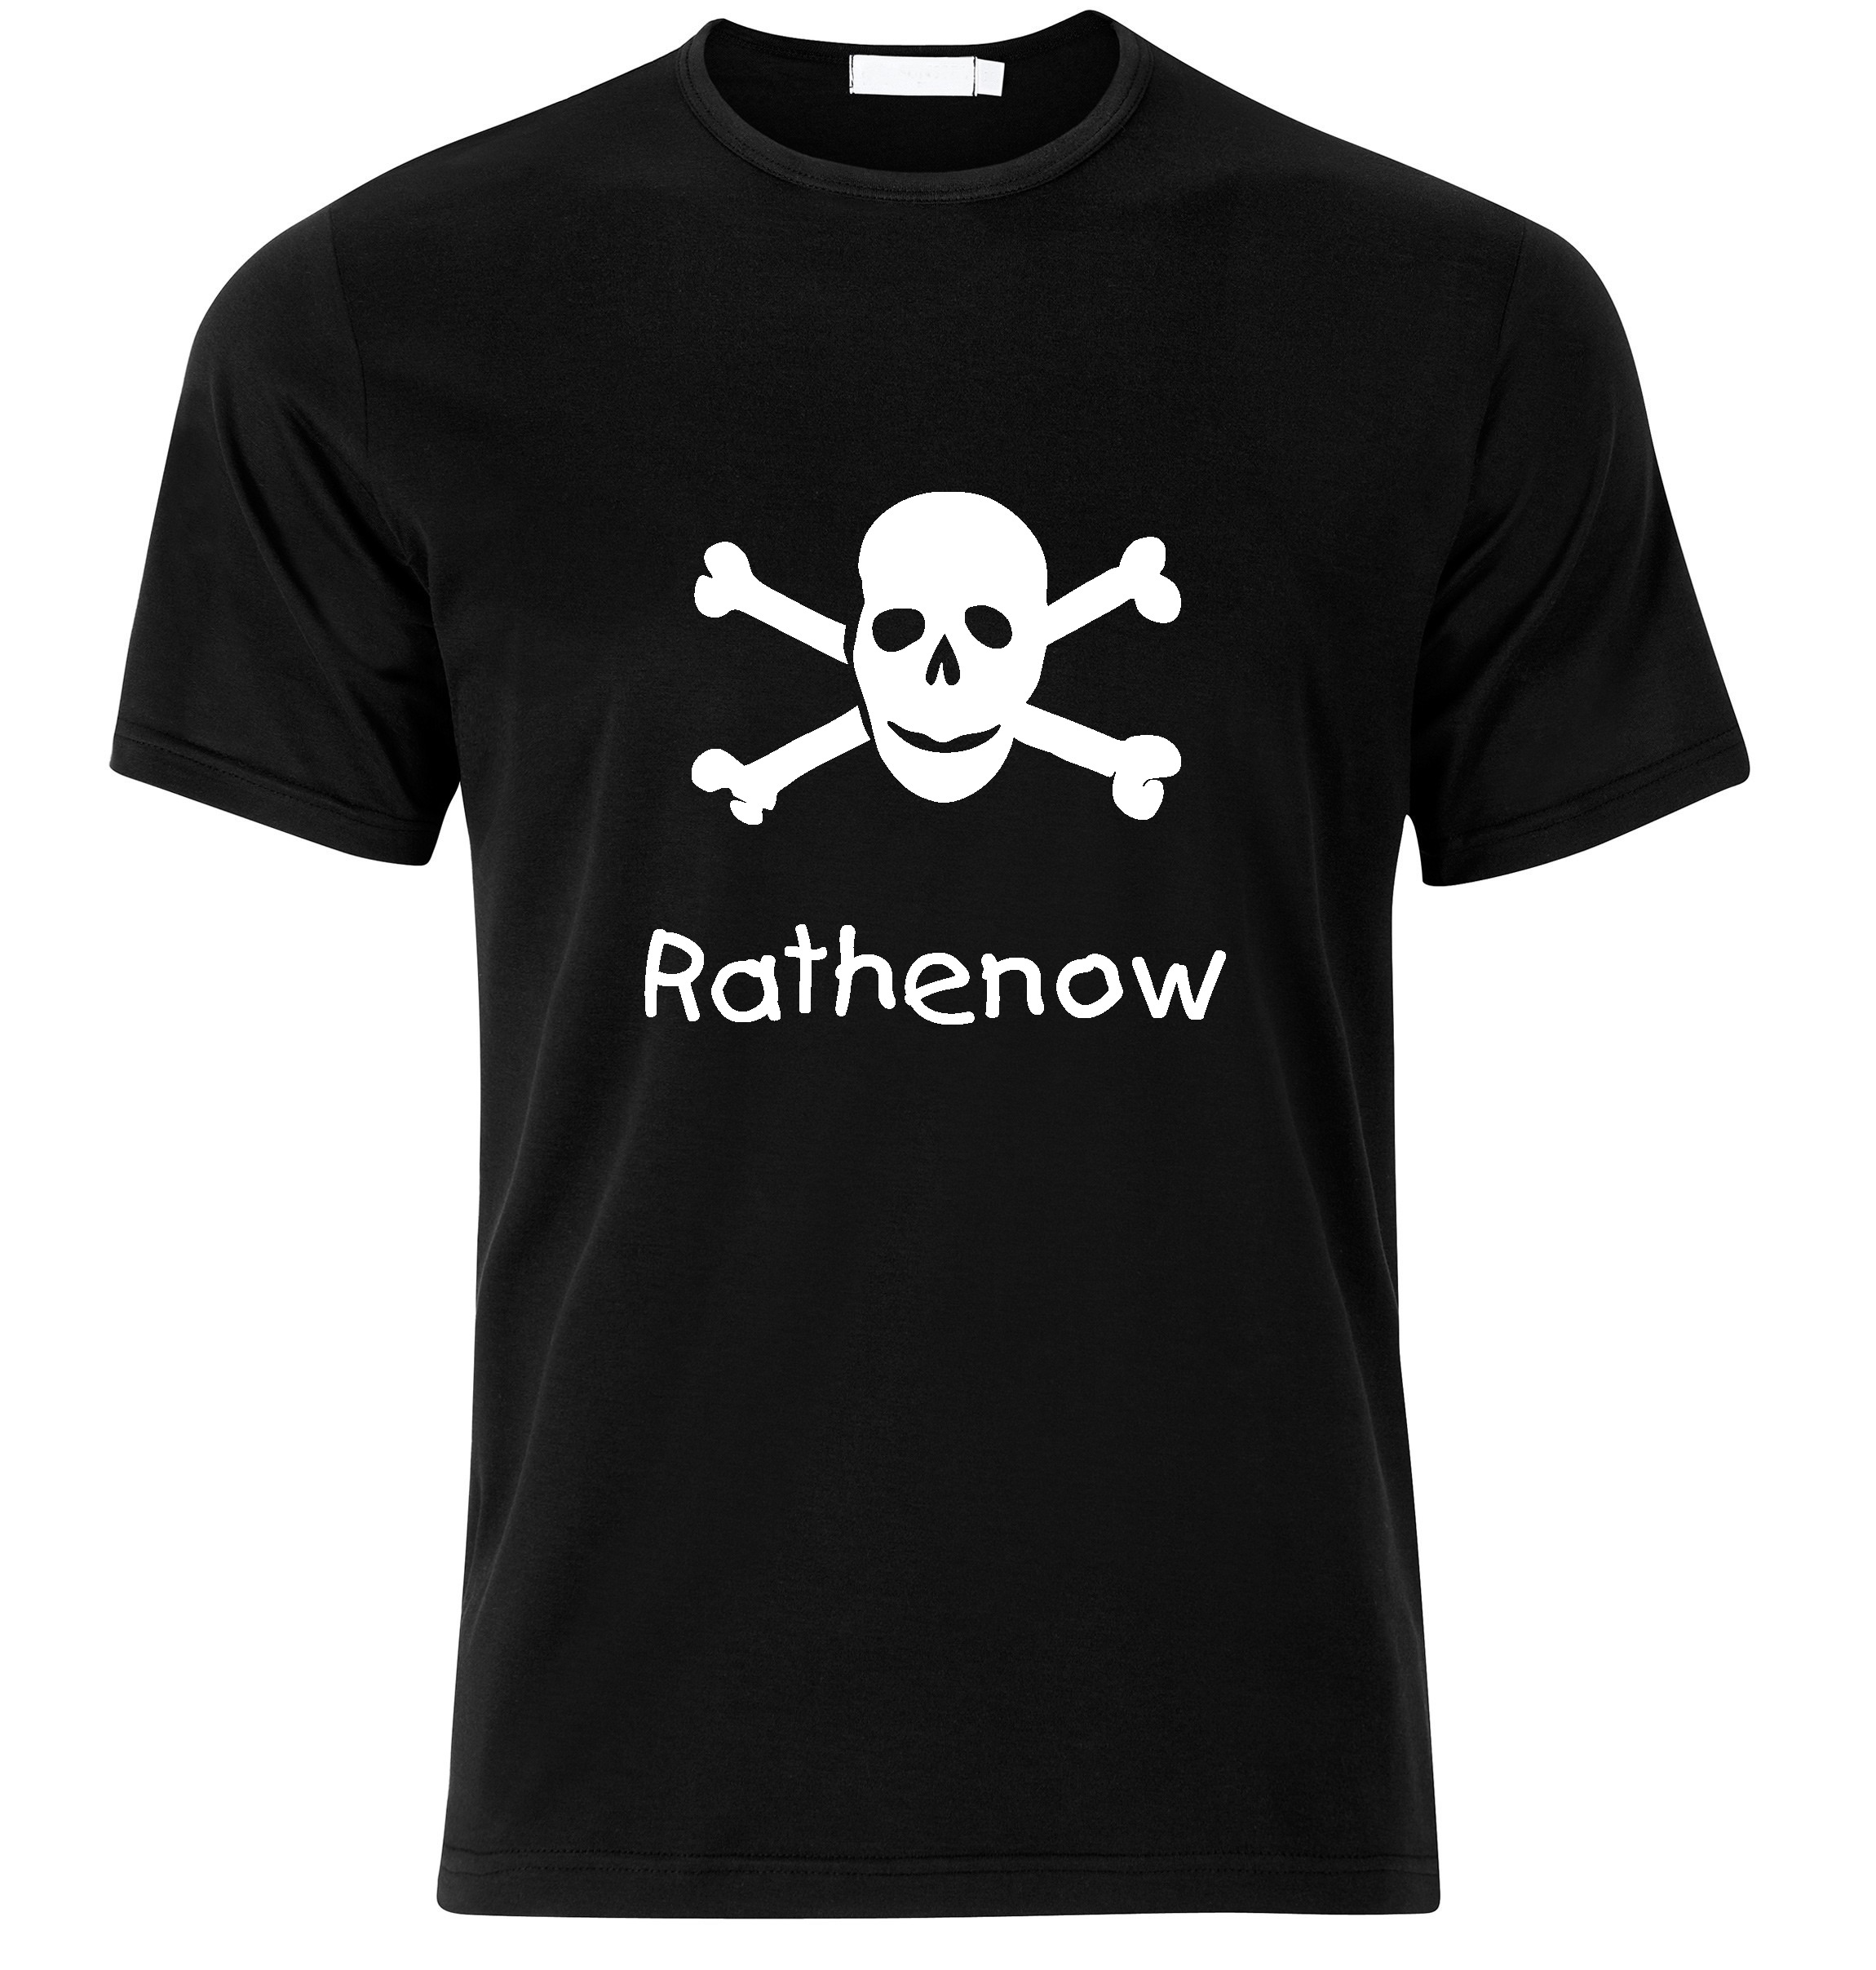 T-Shirt Rathenow Jolly Roger, Totenkopf